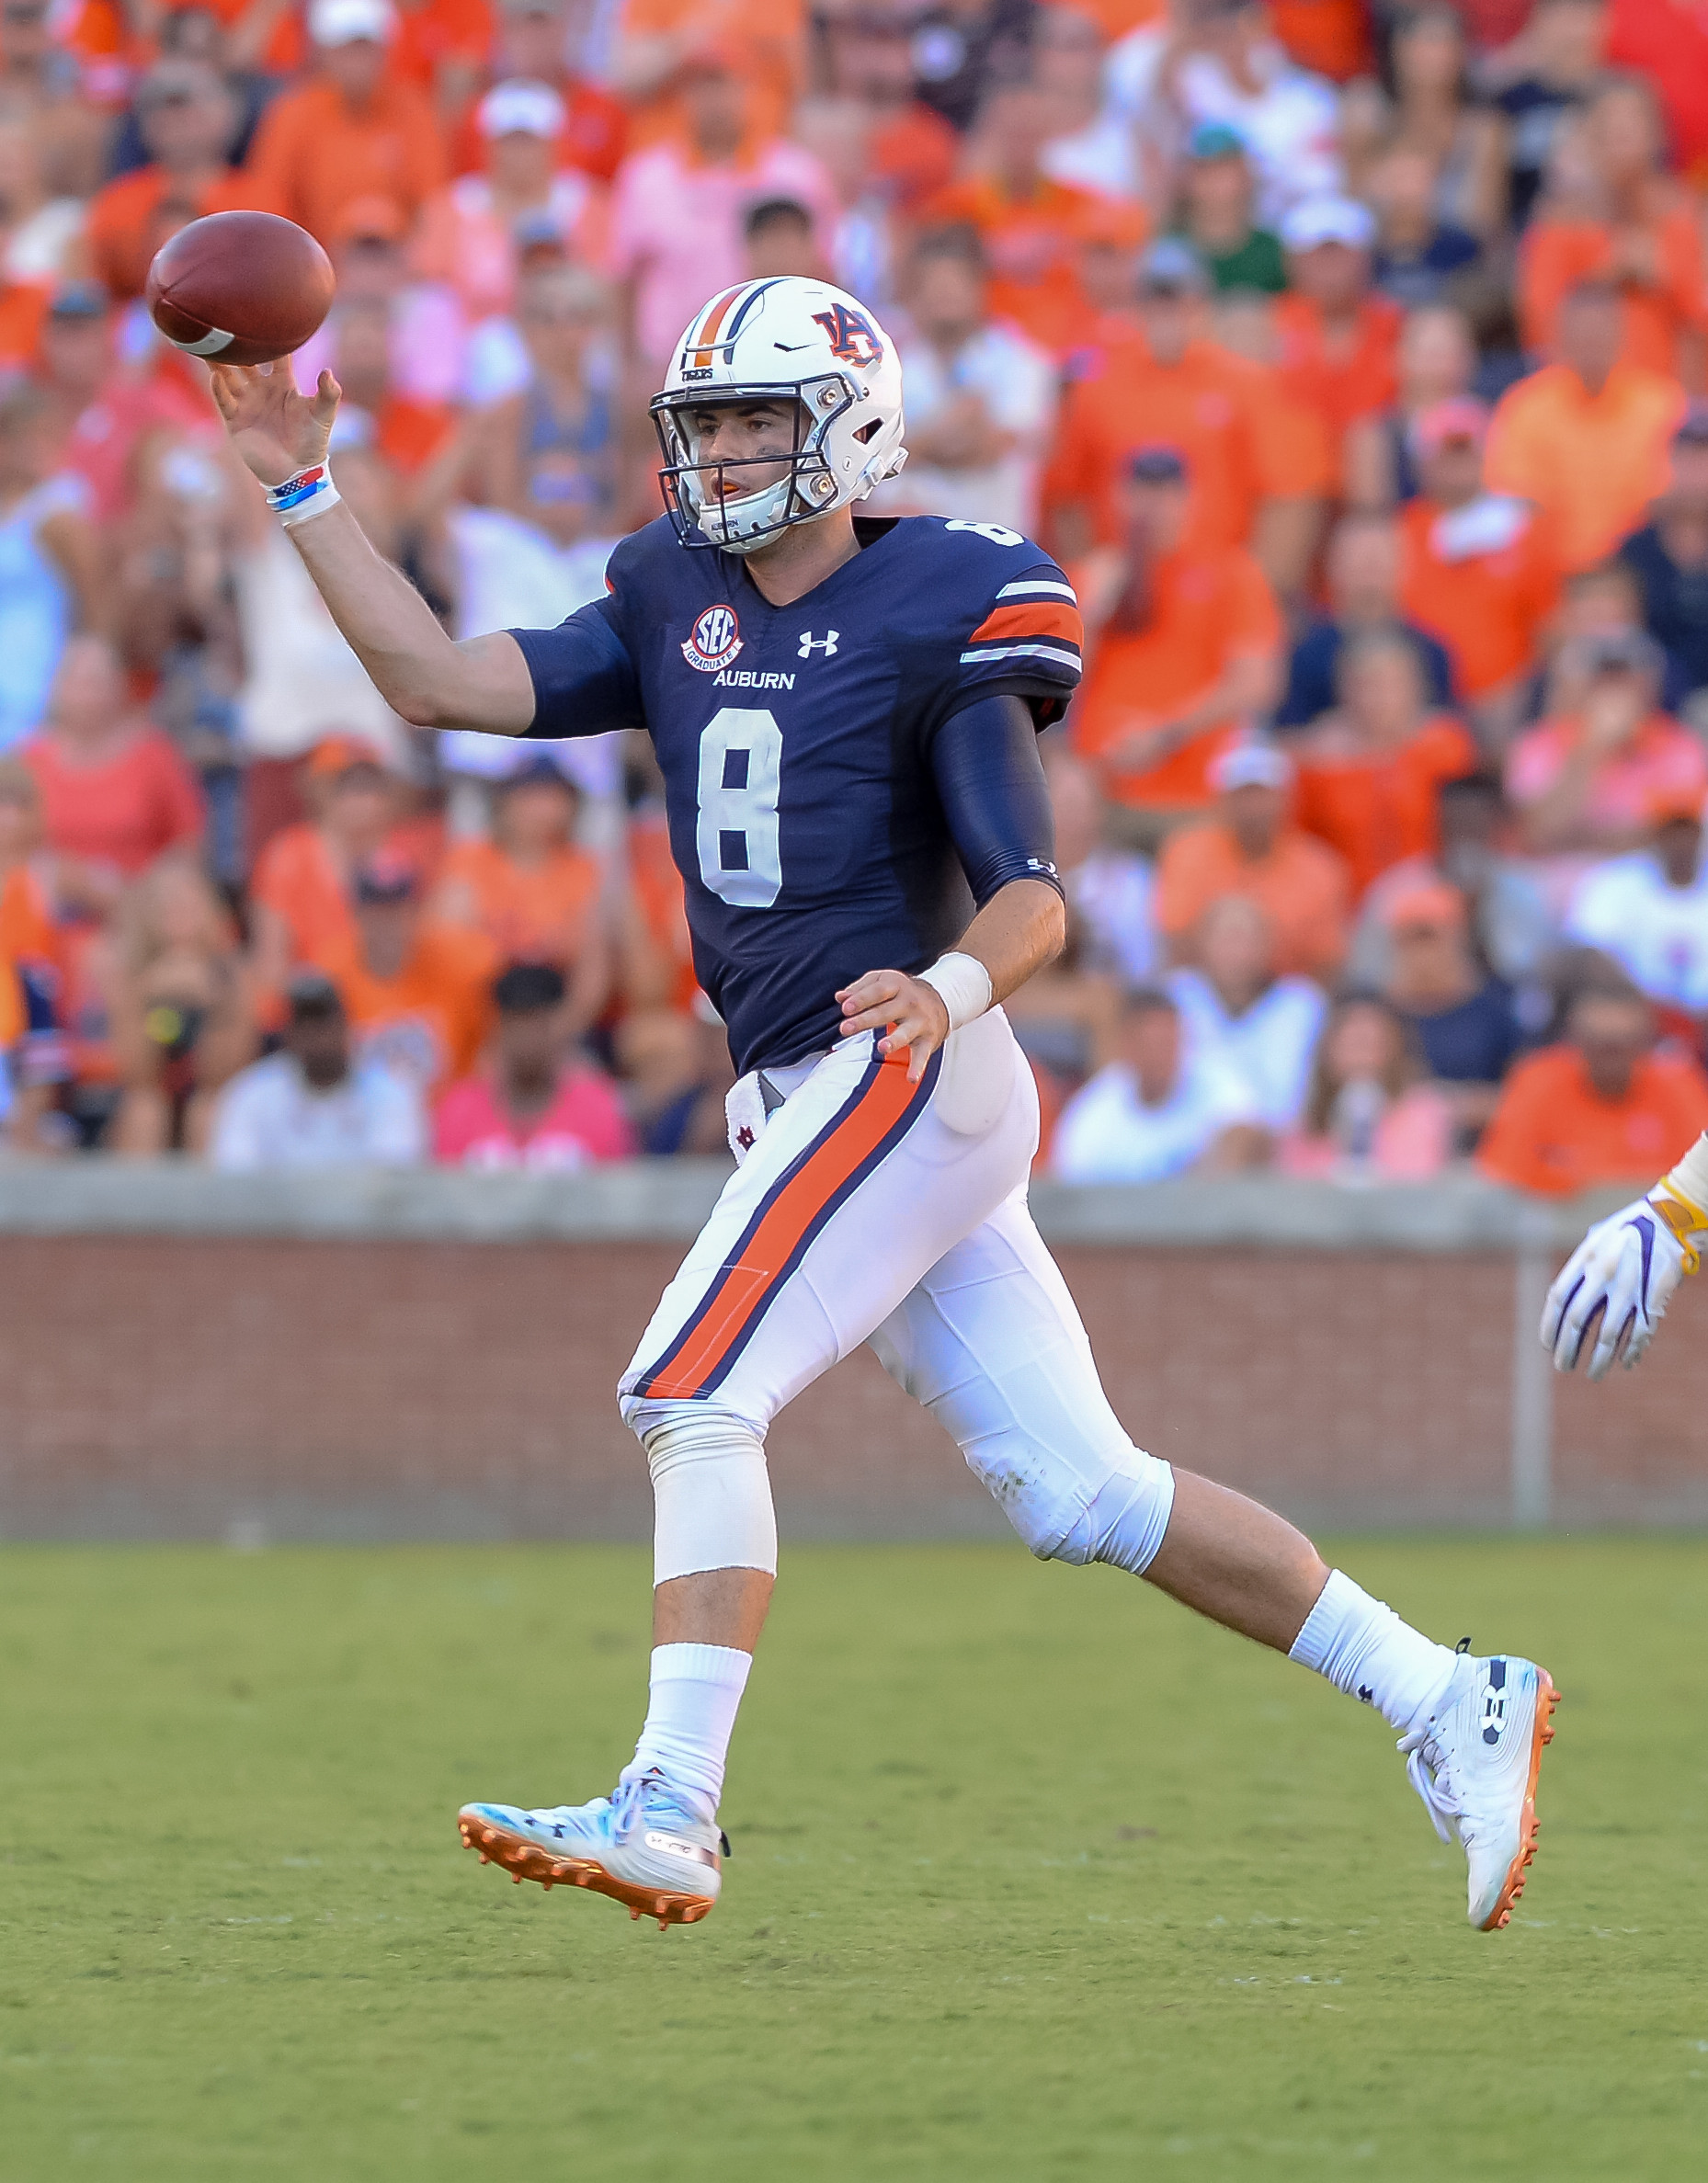 Auburn Tigers quarterback Jarrett Stidham (8) throws during the second half of Saturday's game, at Jordan Hare Stadium in Auburn. (Contributed by Jeff Johnsey)